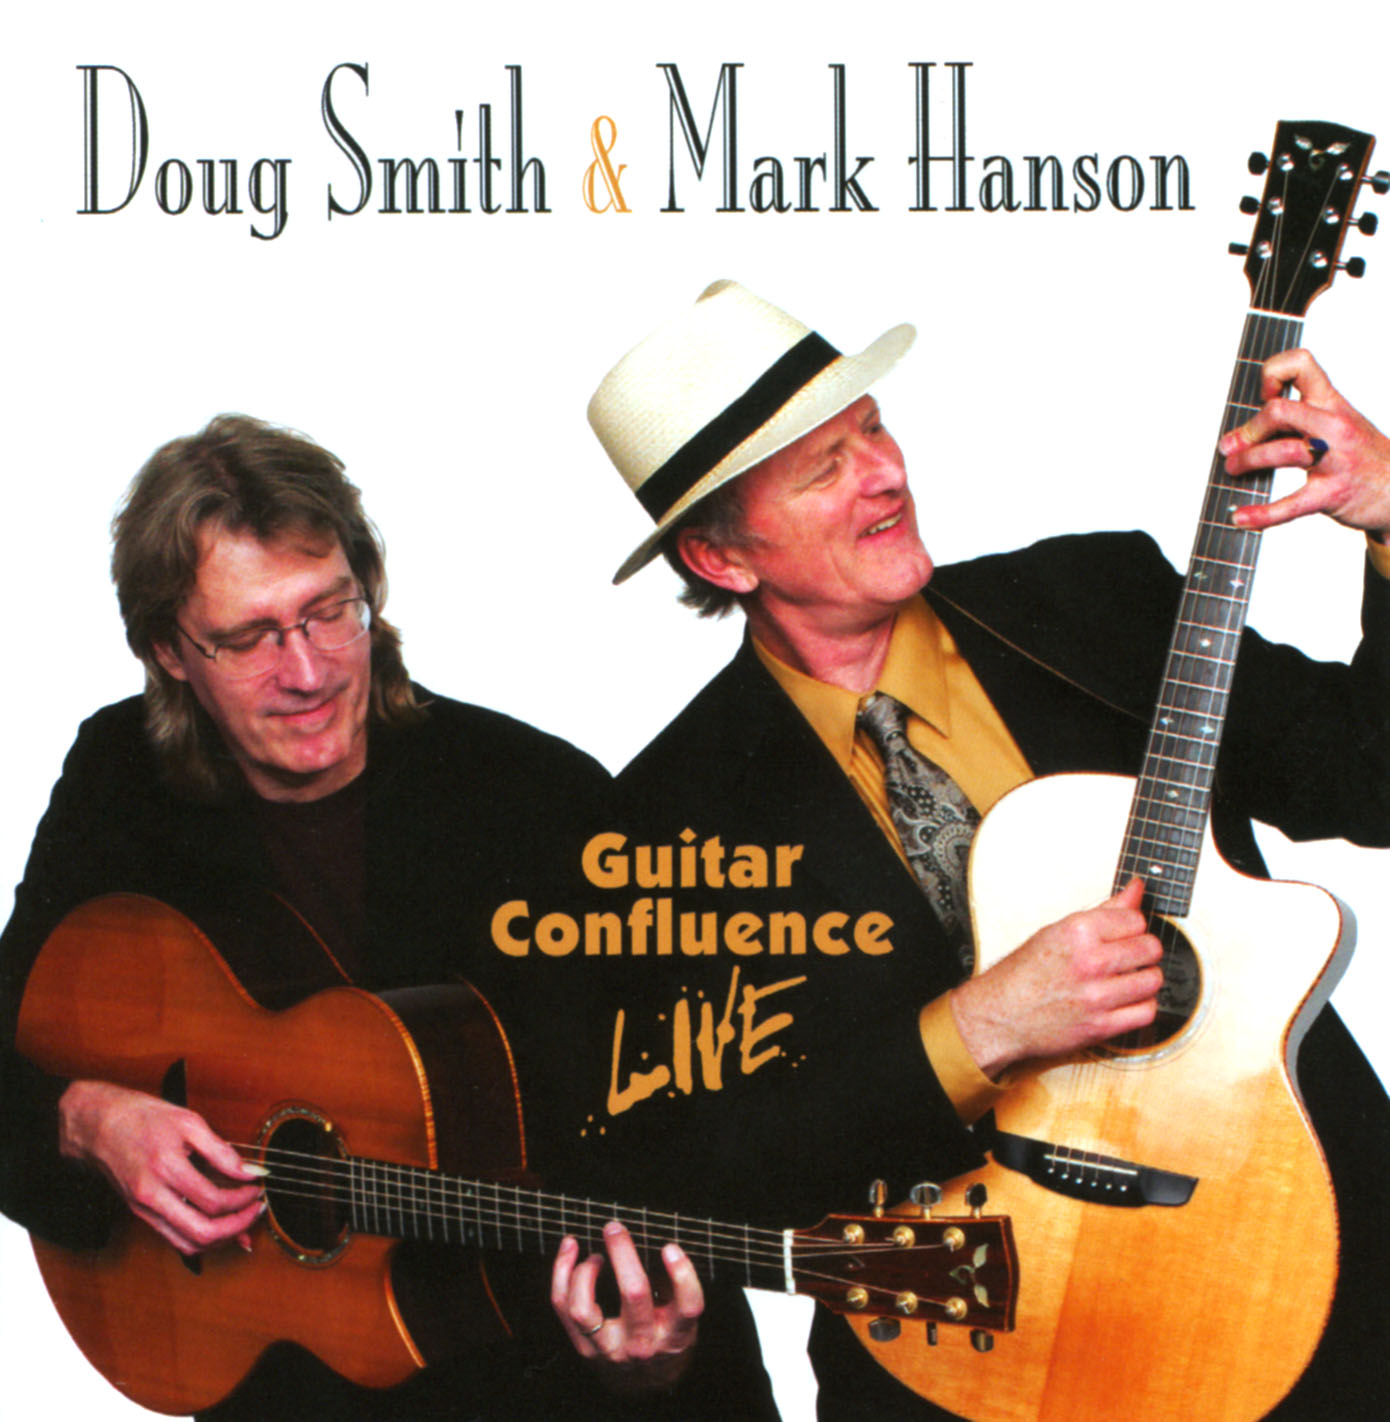 Doug Smith & Mark Hanson: Guitar Confluence Live